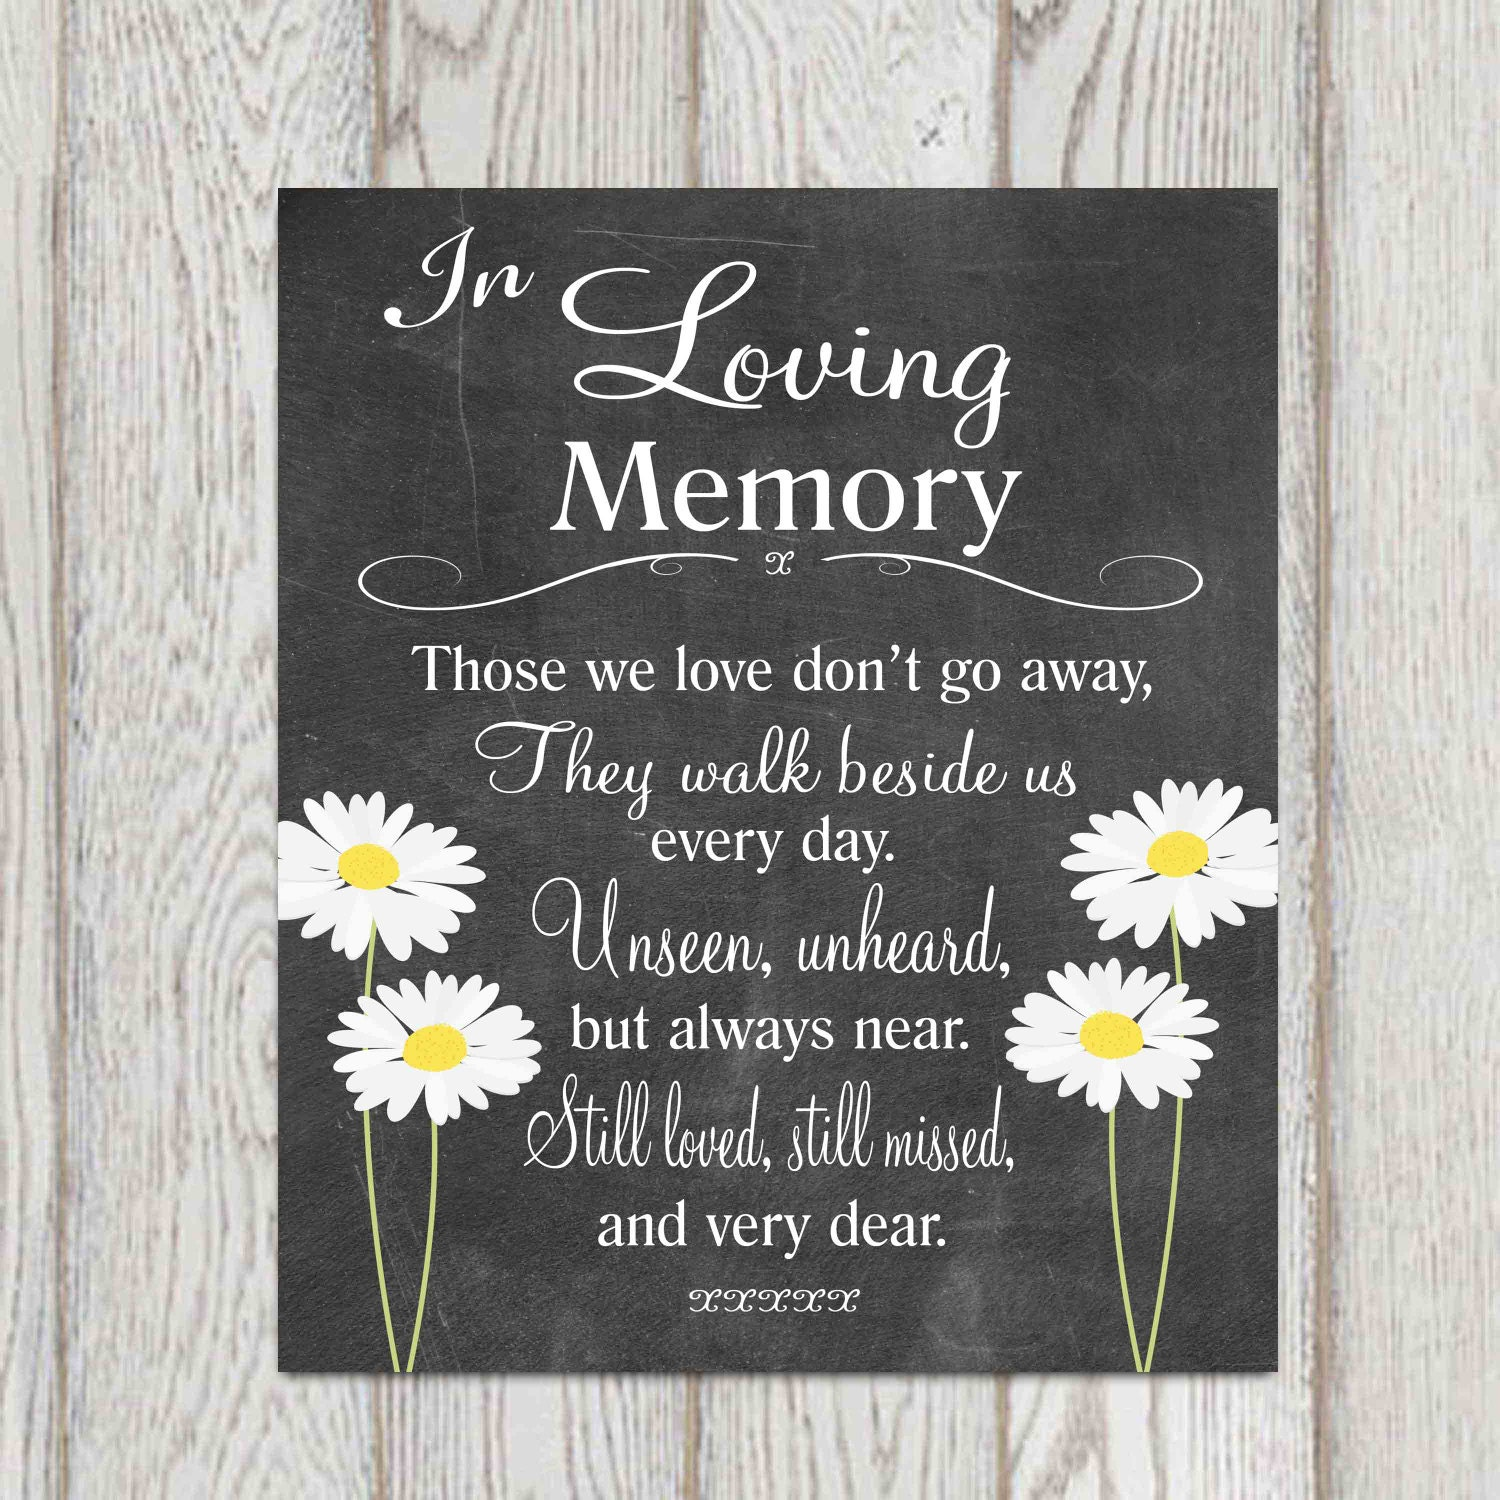 Quotes For Memory: Memorial Table In Loving Memory Printable Wedding Memorial